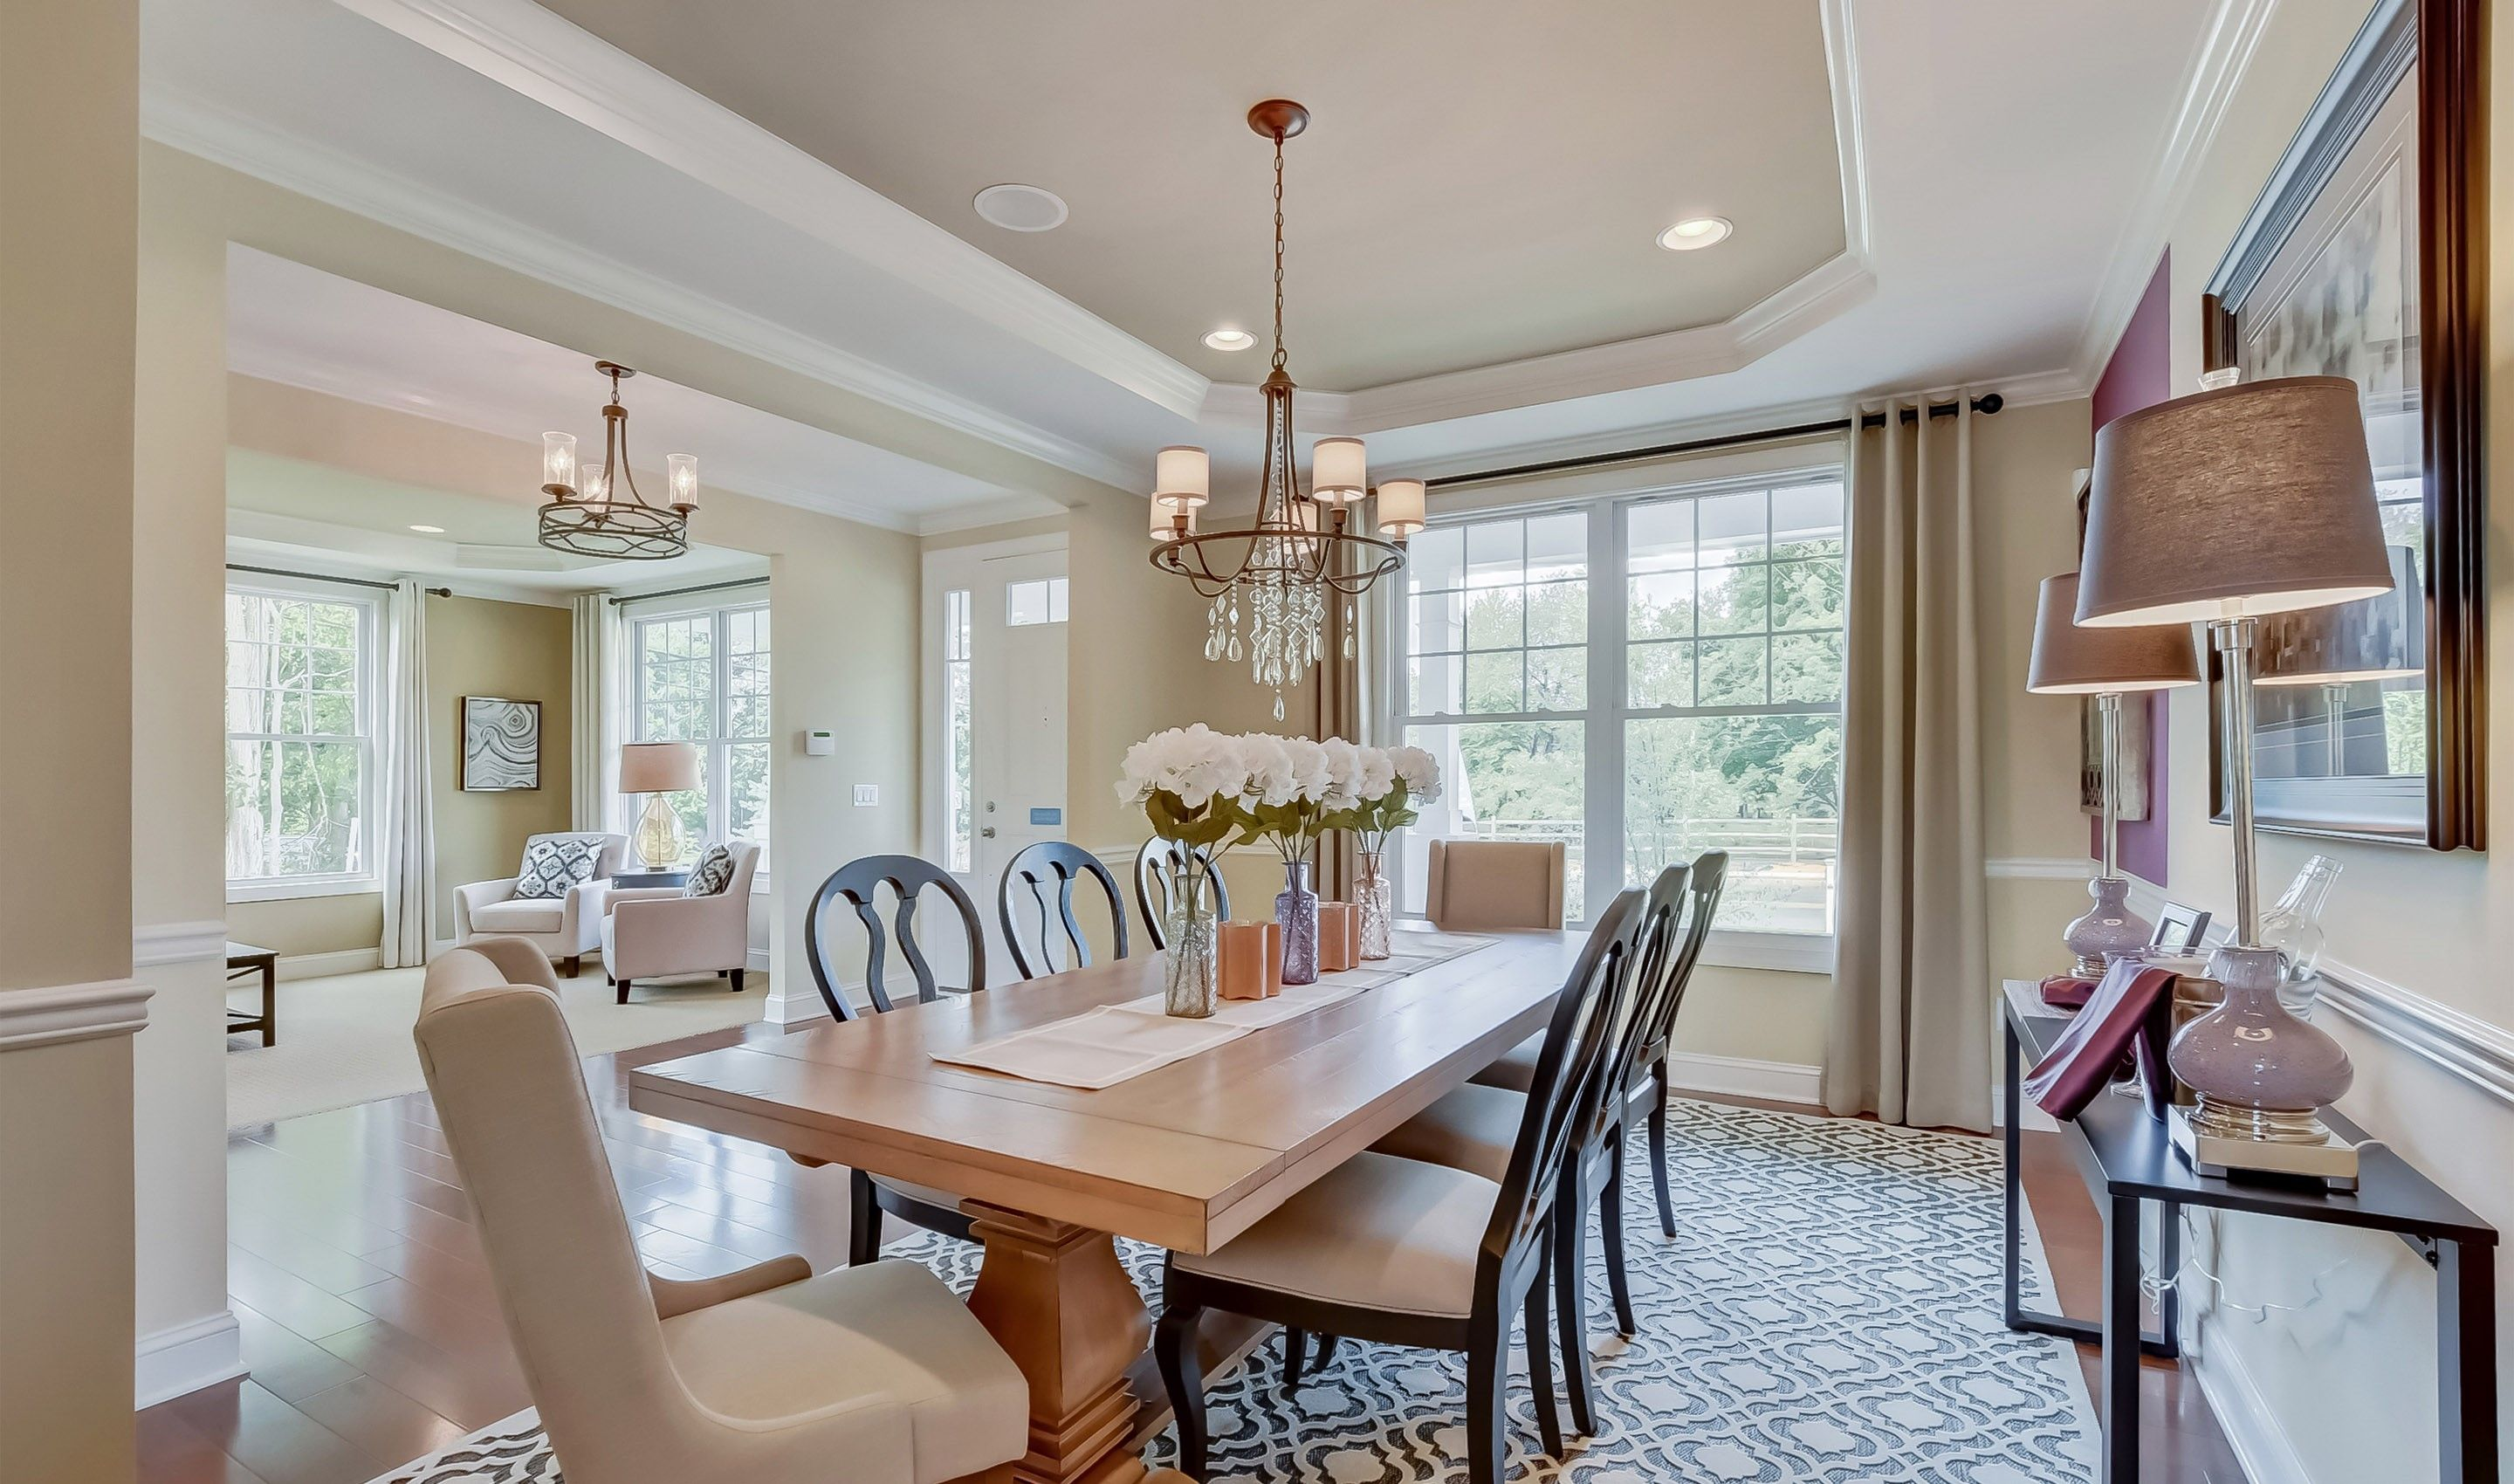 Single Family for Active at Dover 2 Cairnes Lane, Homesite 6 East Brunswick Township, New Jersey 08816 United States